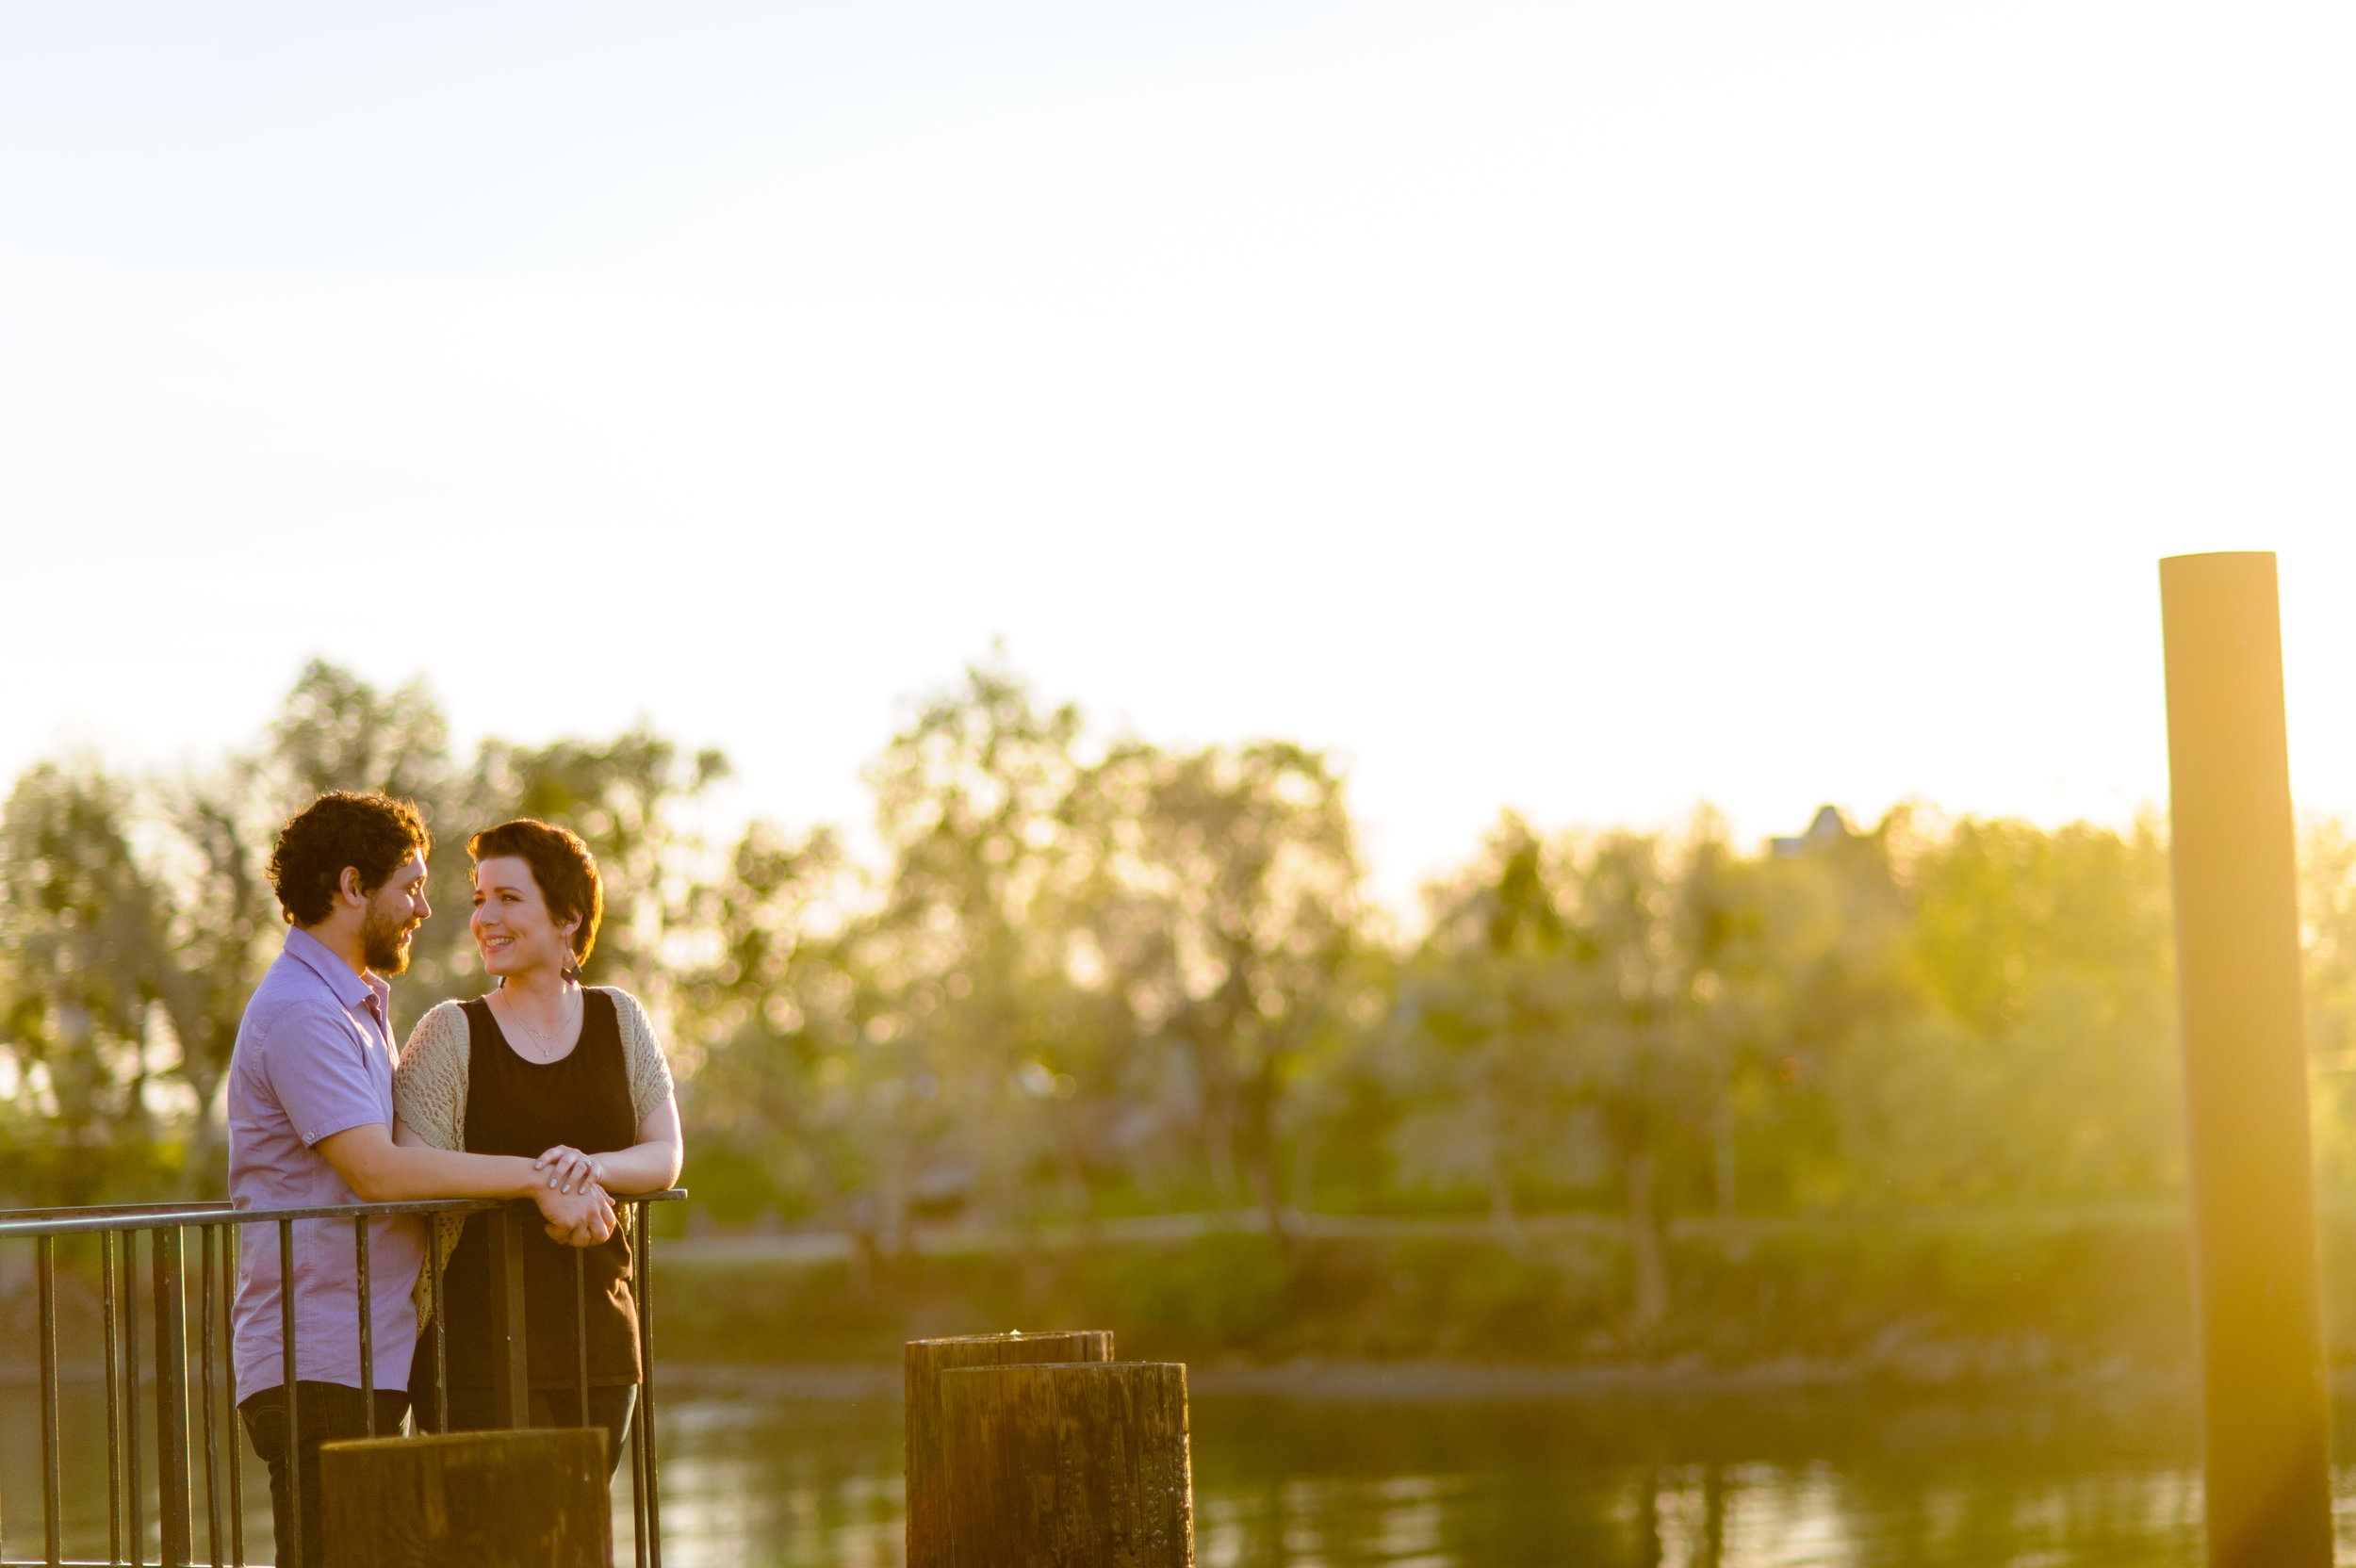 chloe-evan-011-old-sacramento-engagement-session-wedding-photographer-katherine-nicole-photography.JPG